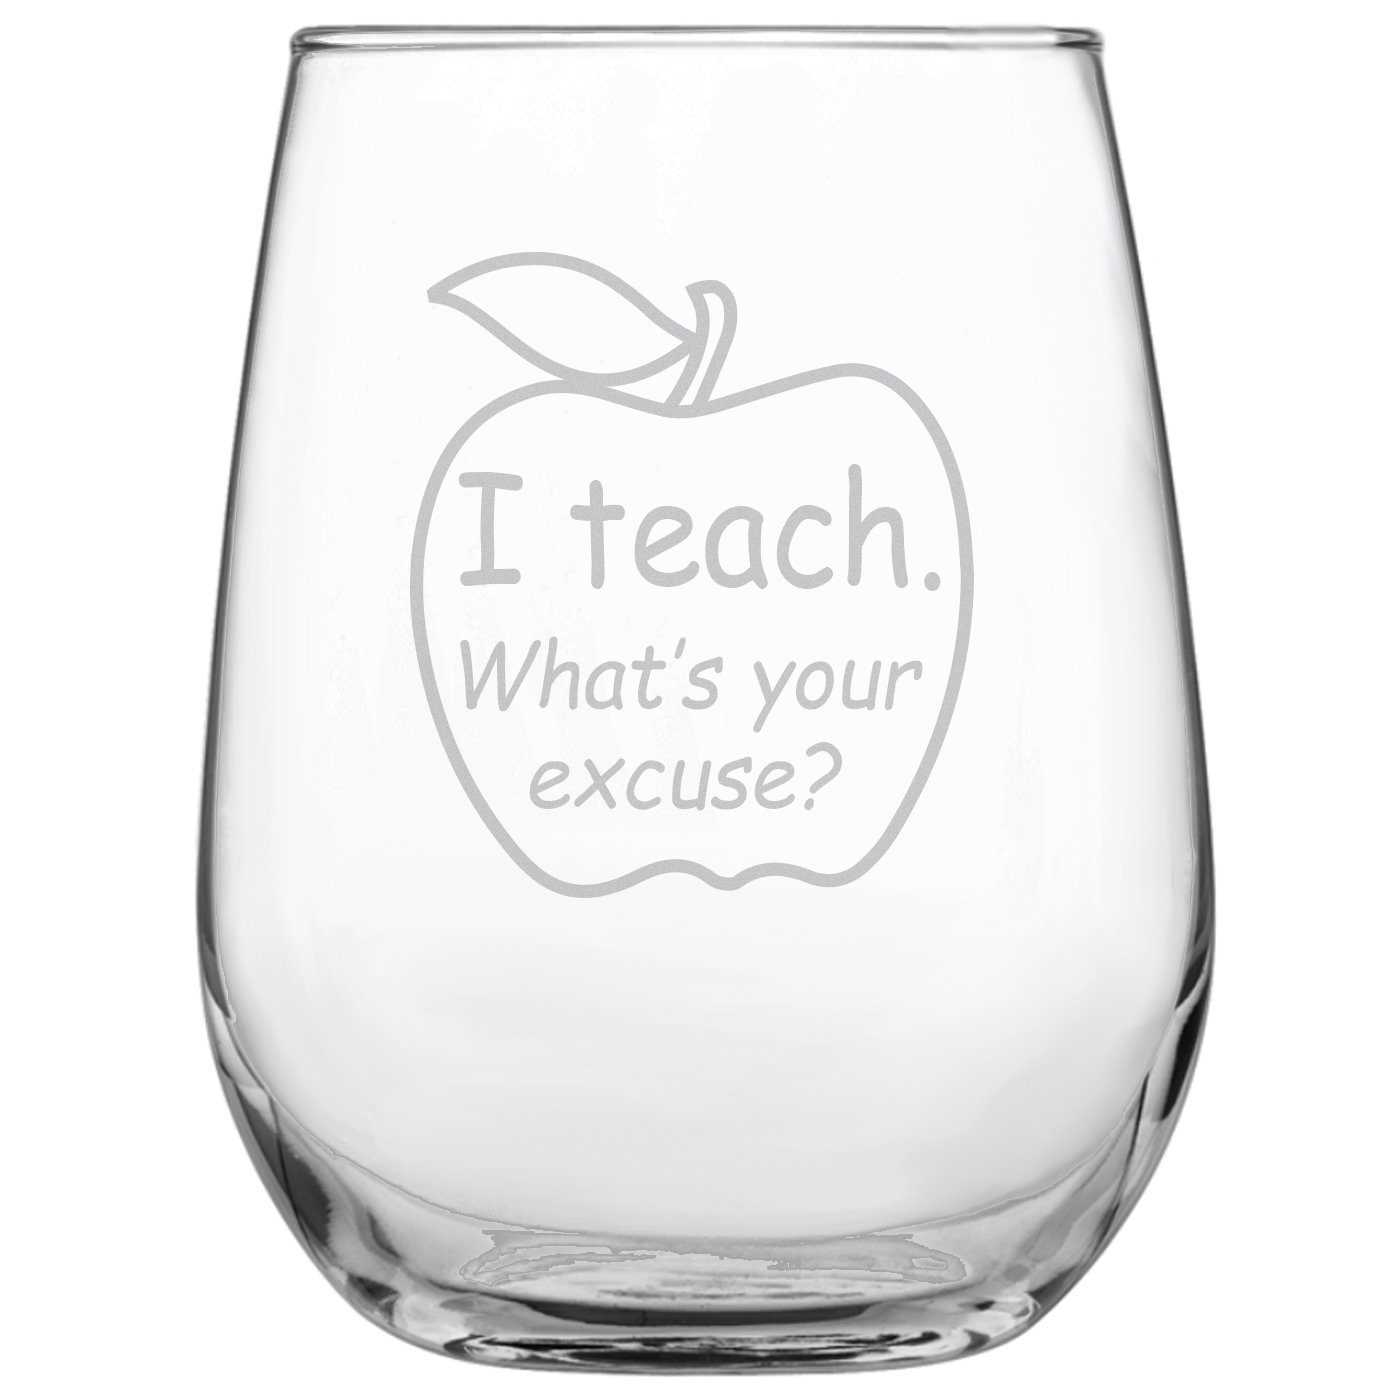 I Teach. What's Your Excuse? Funny 17oz Stemless Funny Wine Glass - Engraved Gift for Teacher • University • College • Professor • Teacher's Gift • Homeschool • Back to School